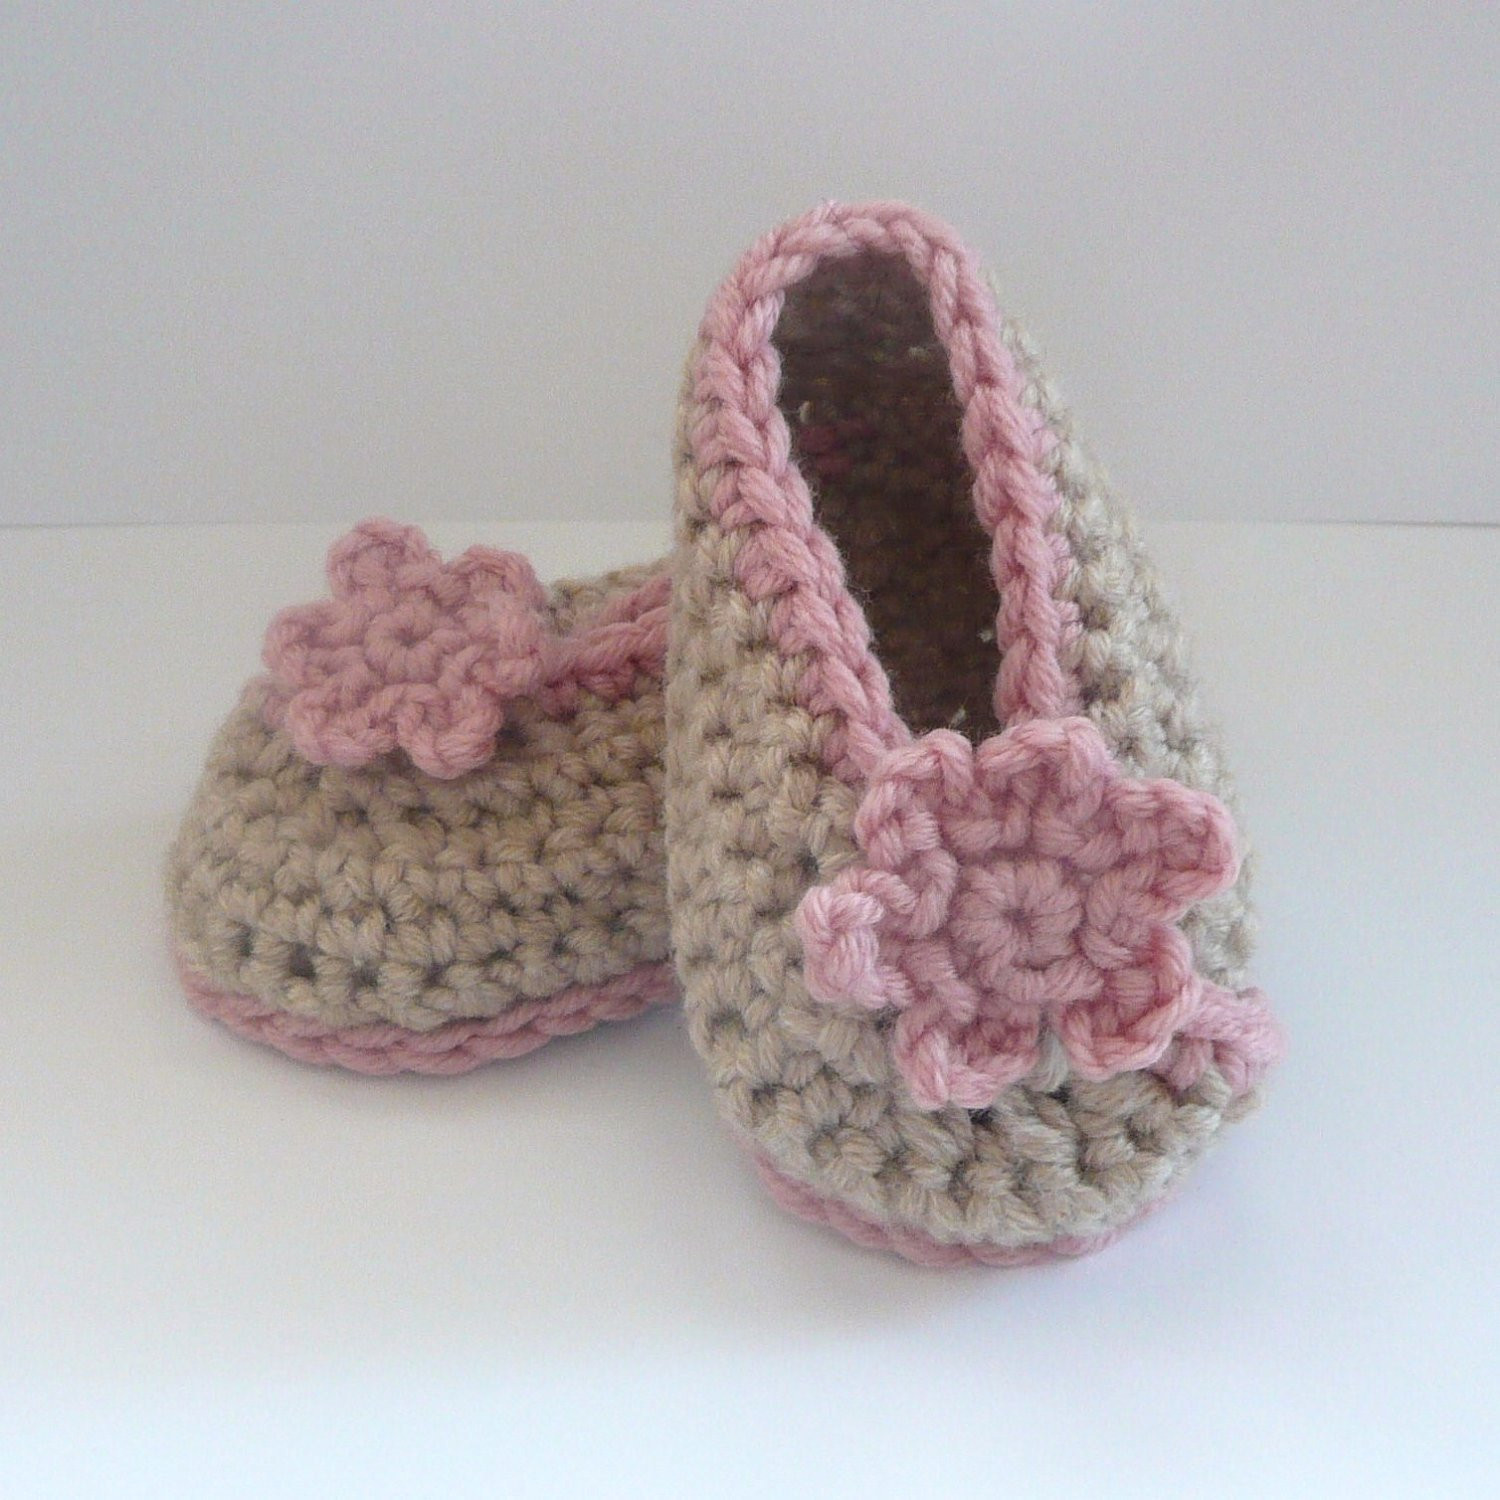 Baby Booties Crochet Pattern Elegant Crochet Pattern Baby Booties Crossover Baby Shoes Instant Of Top 49 Pictures Baby Booties Crochet Pattern